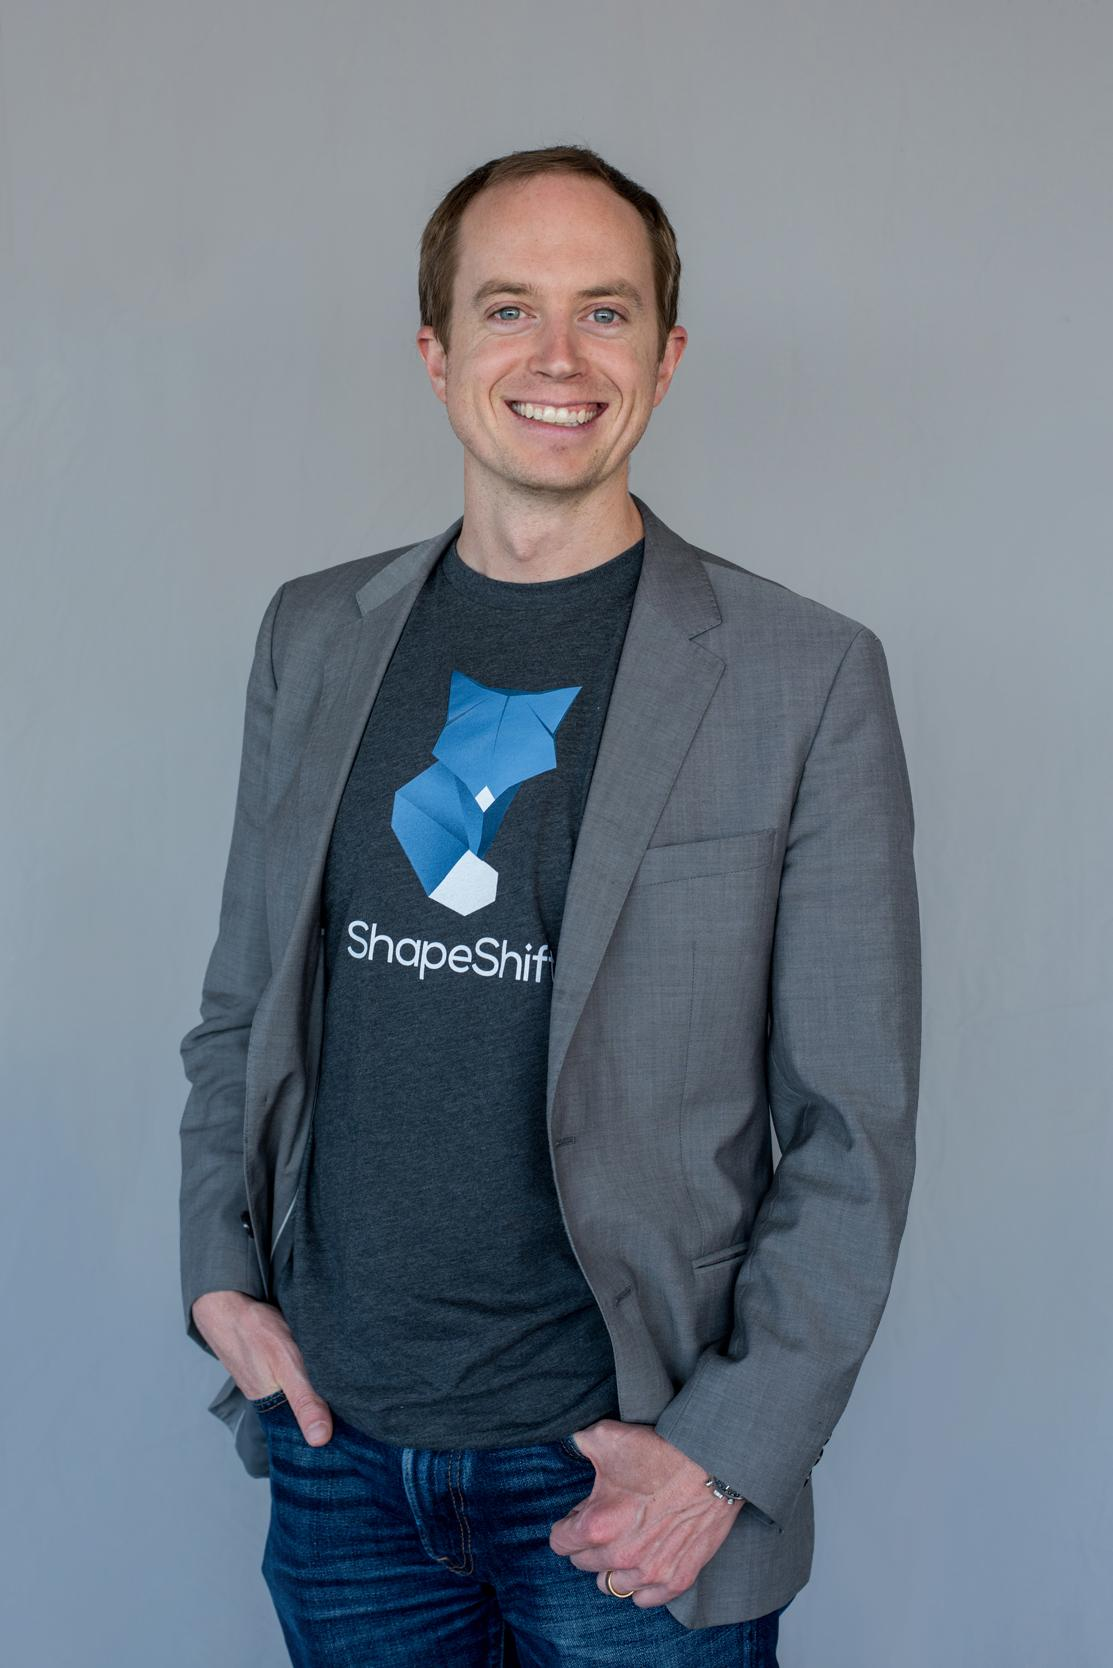 ShapeShift CEO Erik Voorhees